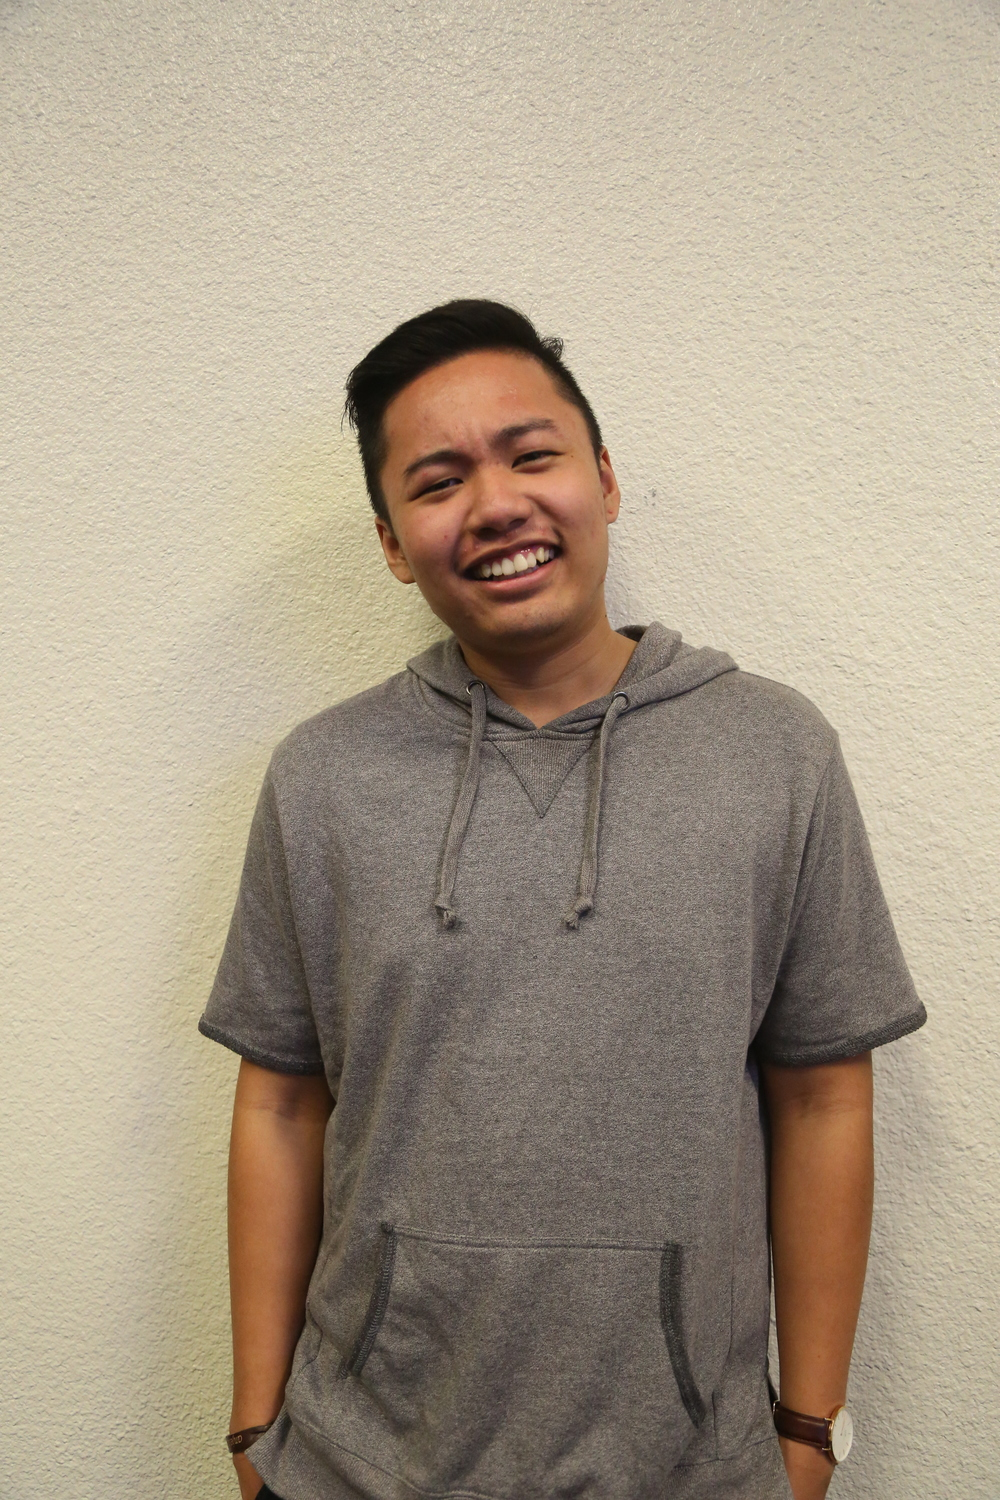 "Name:  Matt Martinez     Position:  PCN Coordinator    Year:  3rd   Major/minor:  Biochemistry with a minor in Mechanical Engineering     Hometown:  West Covina, CA   Favorite Food:  PekPek   Favorite Movie:  Grave of the Fireflies     Favorite Number:  69   Theme Song:  Champion by Kanye West   Random Fact:  I don't like wearing clothes but I only do to dress like Kanye .    Favorite Quote:  ""Life happens wherever you are, whether you make it or not."" - Uncle Iroh (Avatar The Last Airbender)"